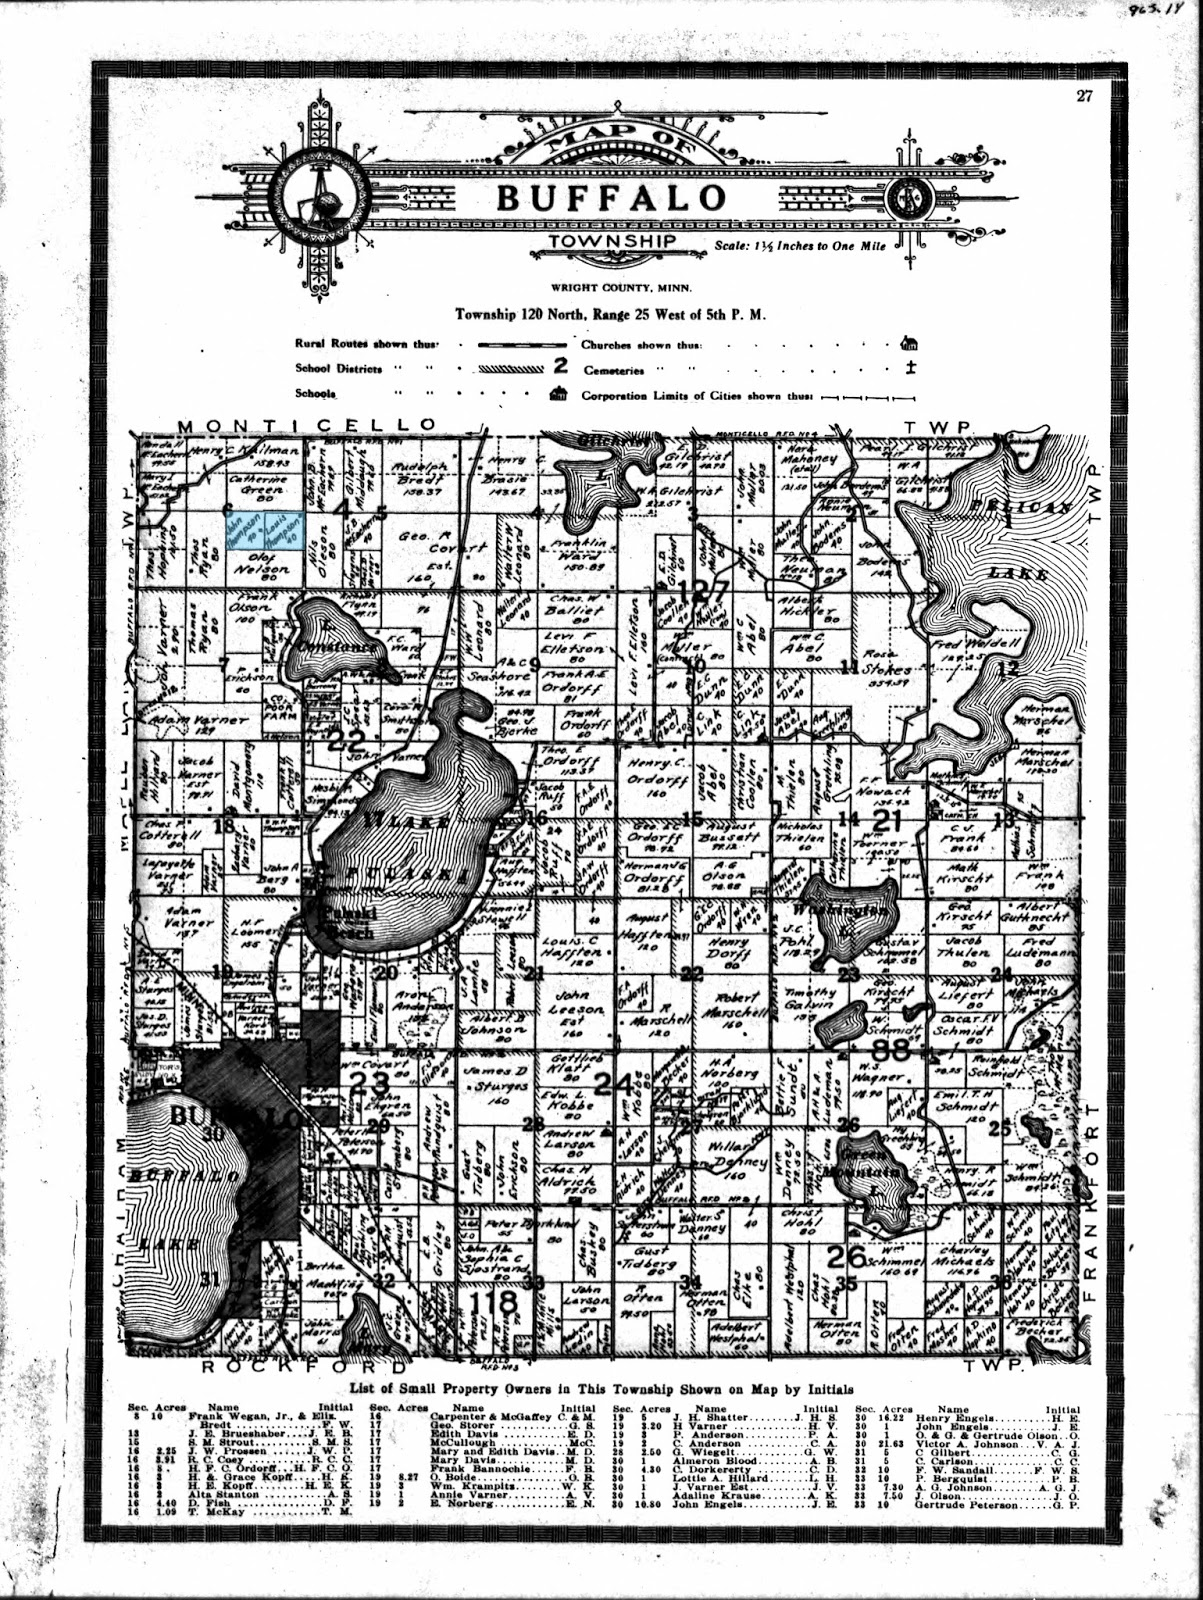 Official Minnesota State Highway Map - dot.state.mn.us